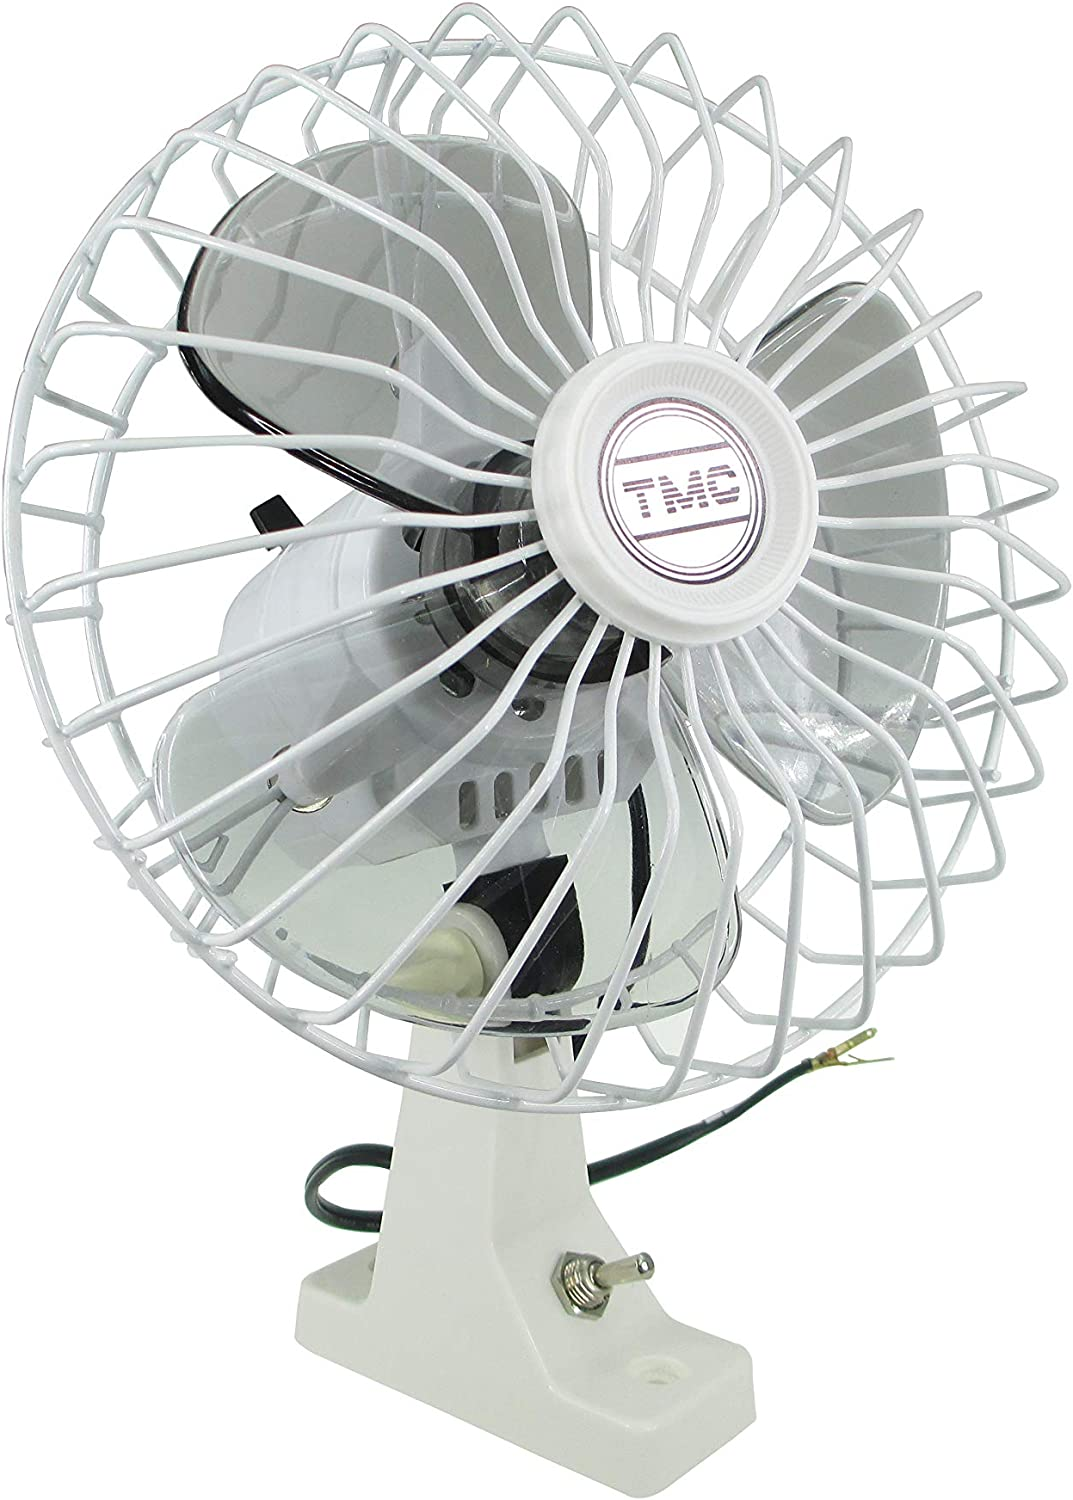 Pactrade Marine Boat TMC Now free shipping 12V Whisper D Oscillating Over item handling ☆ Quiet Fan 6